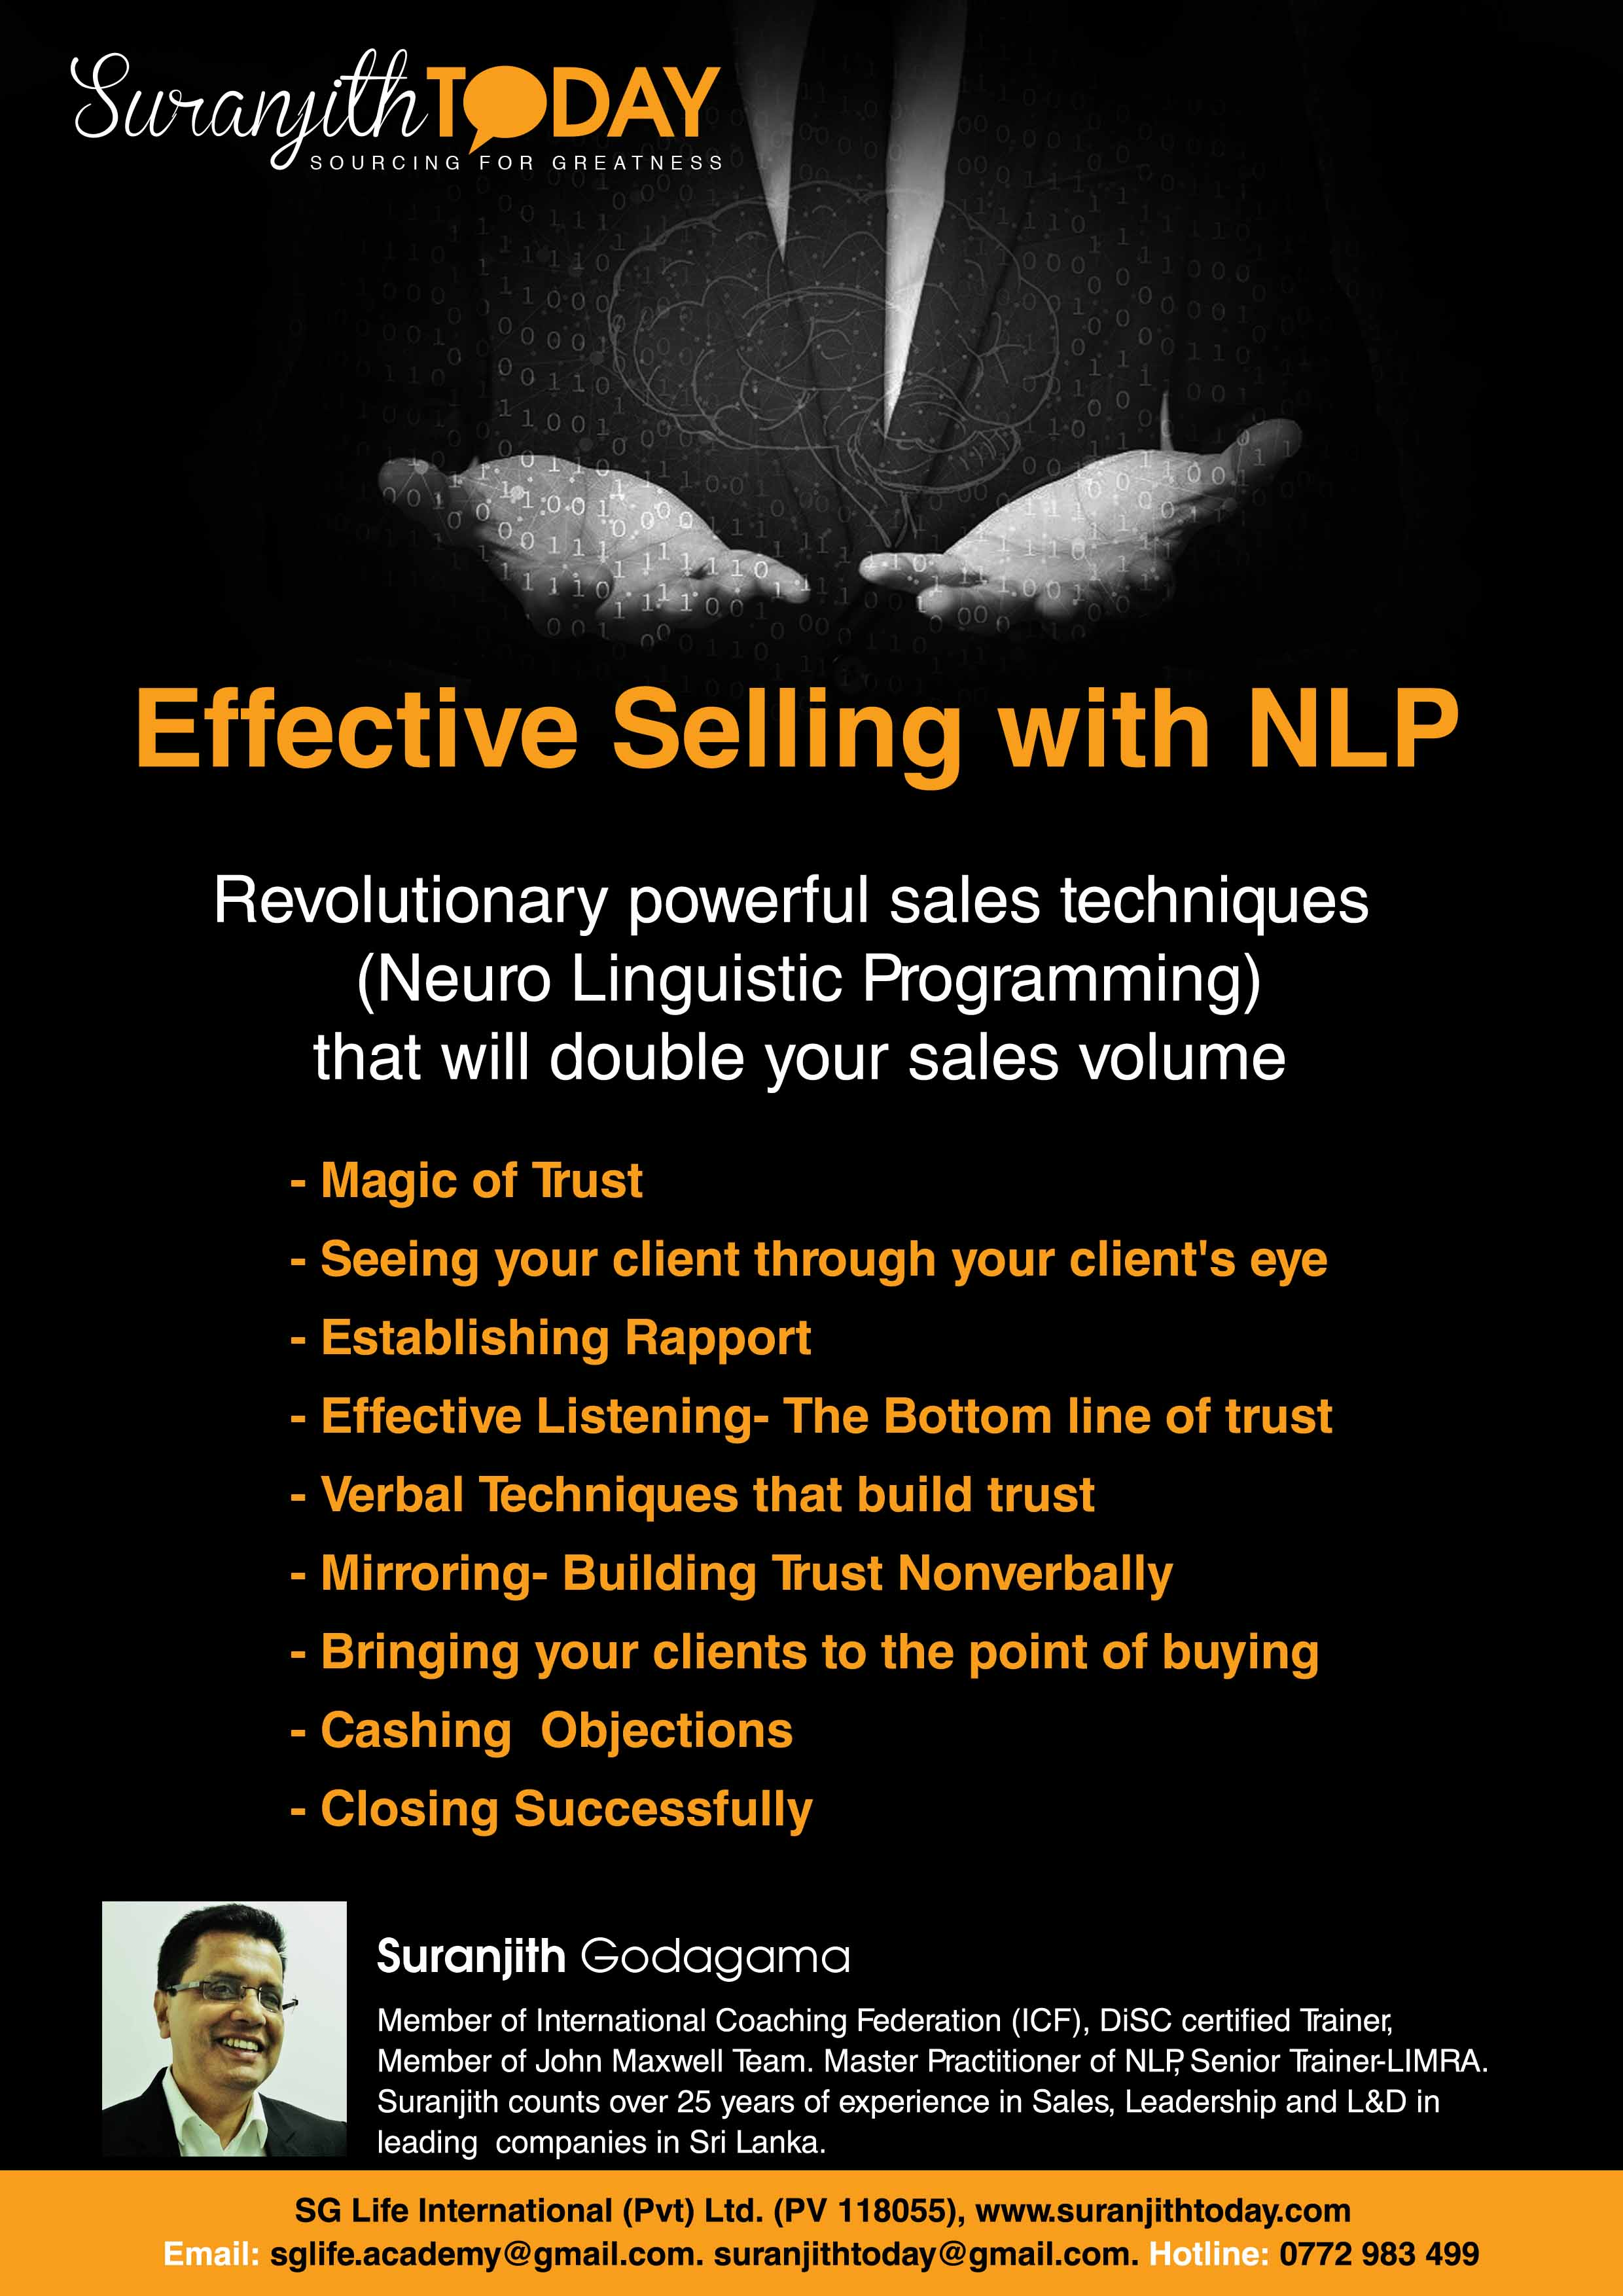 Effective Selling With NLP